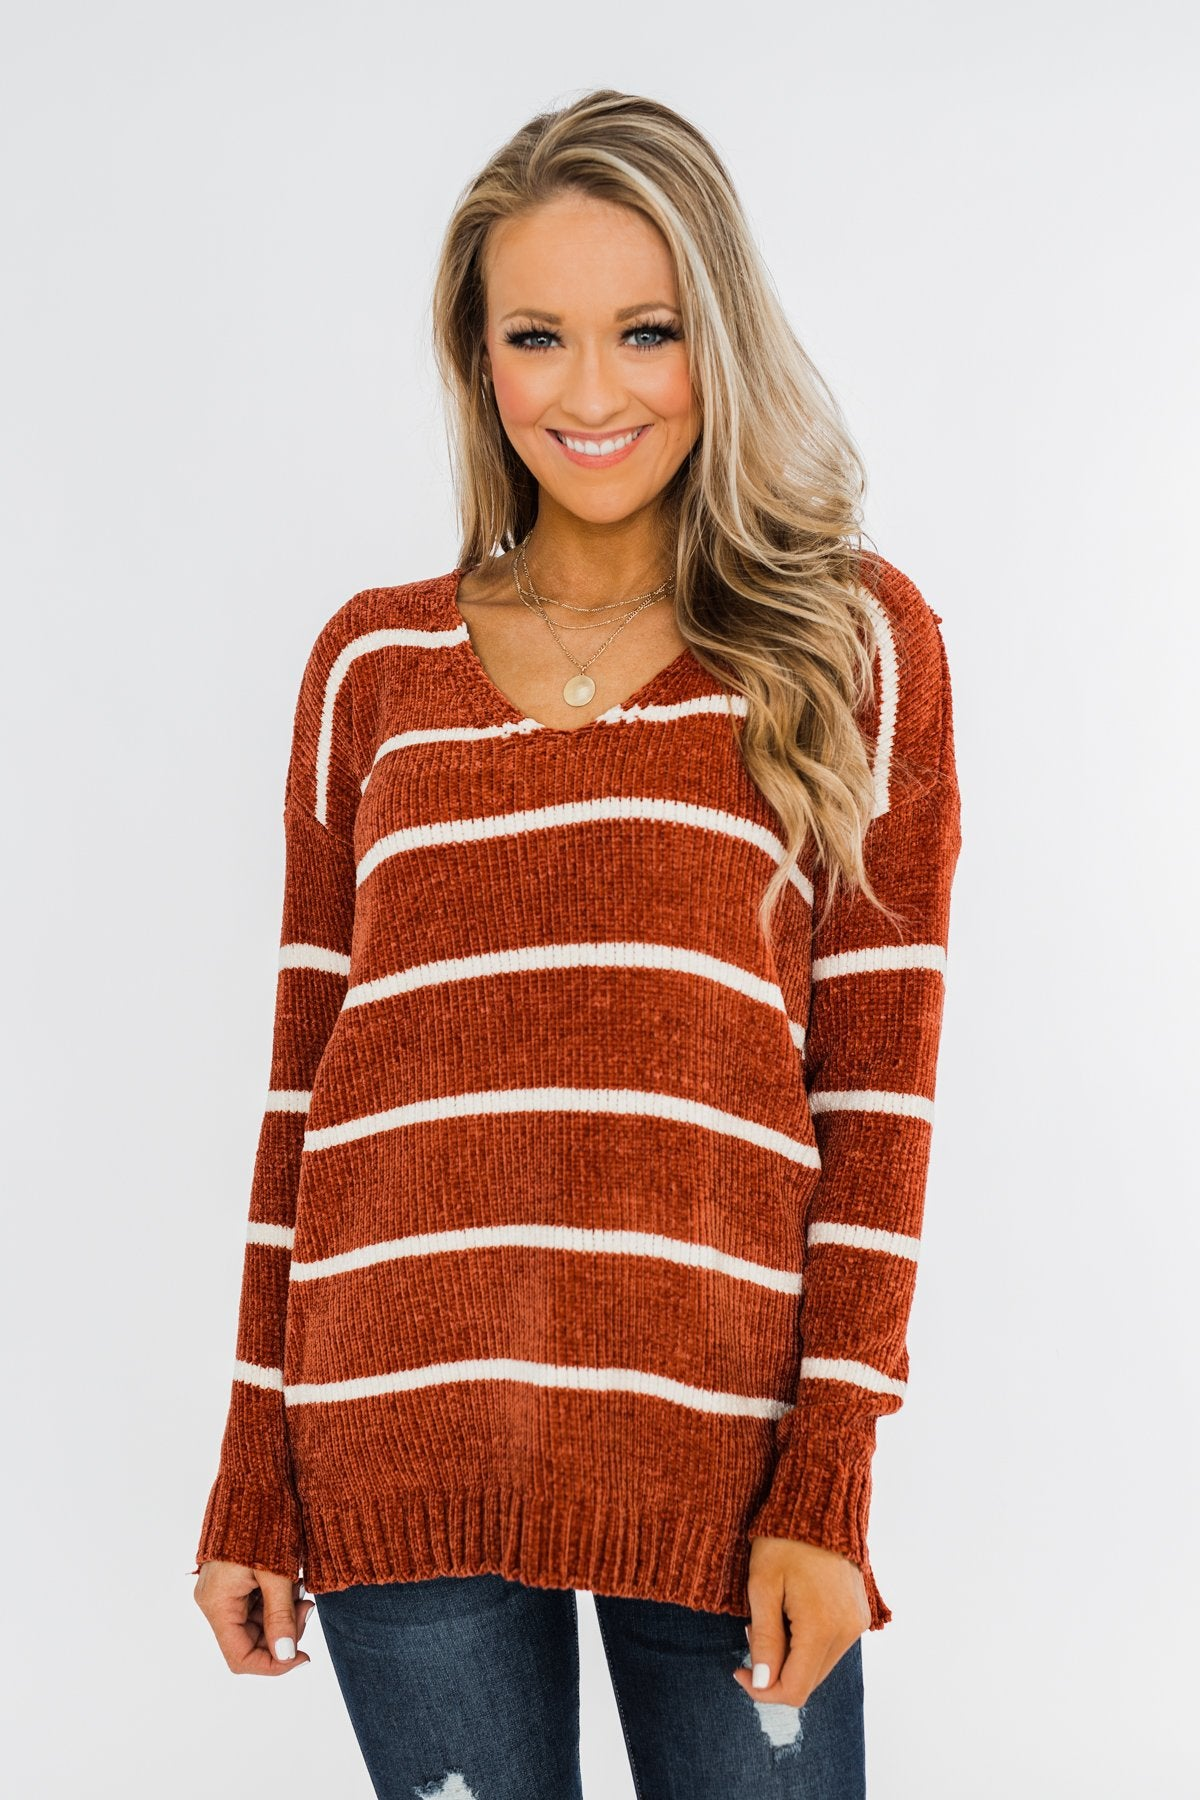 Faithfully Yours Striped Knit Sweater- Copper & Ivory